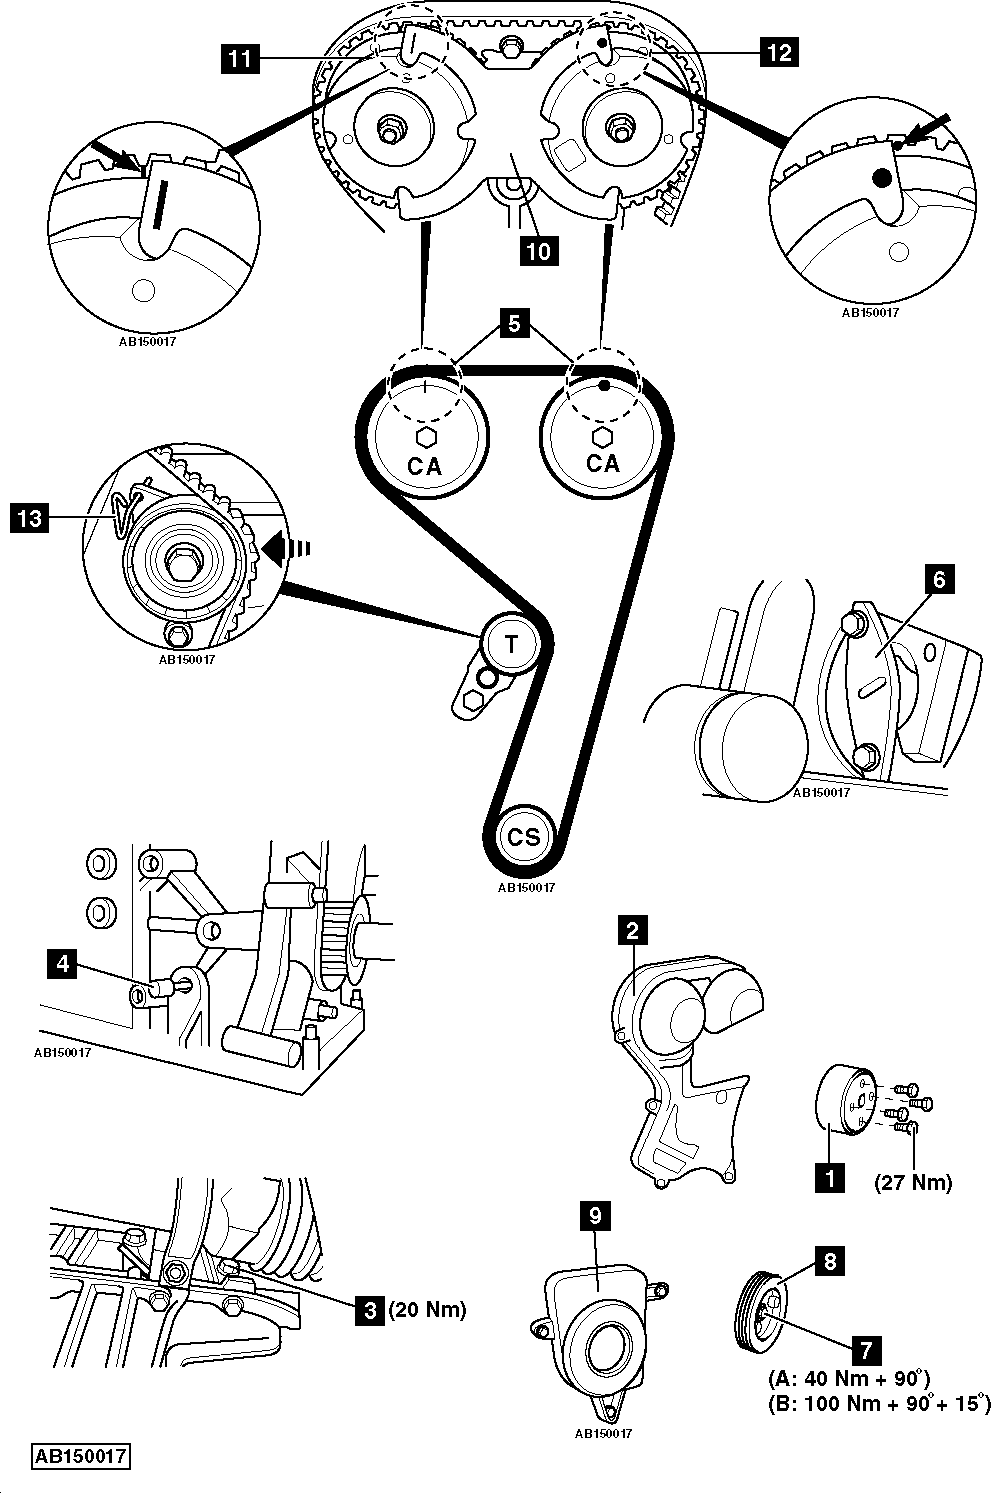 [DIAGRAM] Ktm Freeride 250 Wiring Diagram FULL Version HD